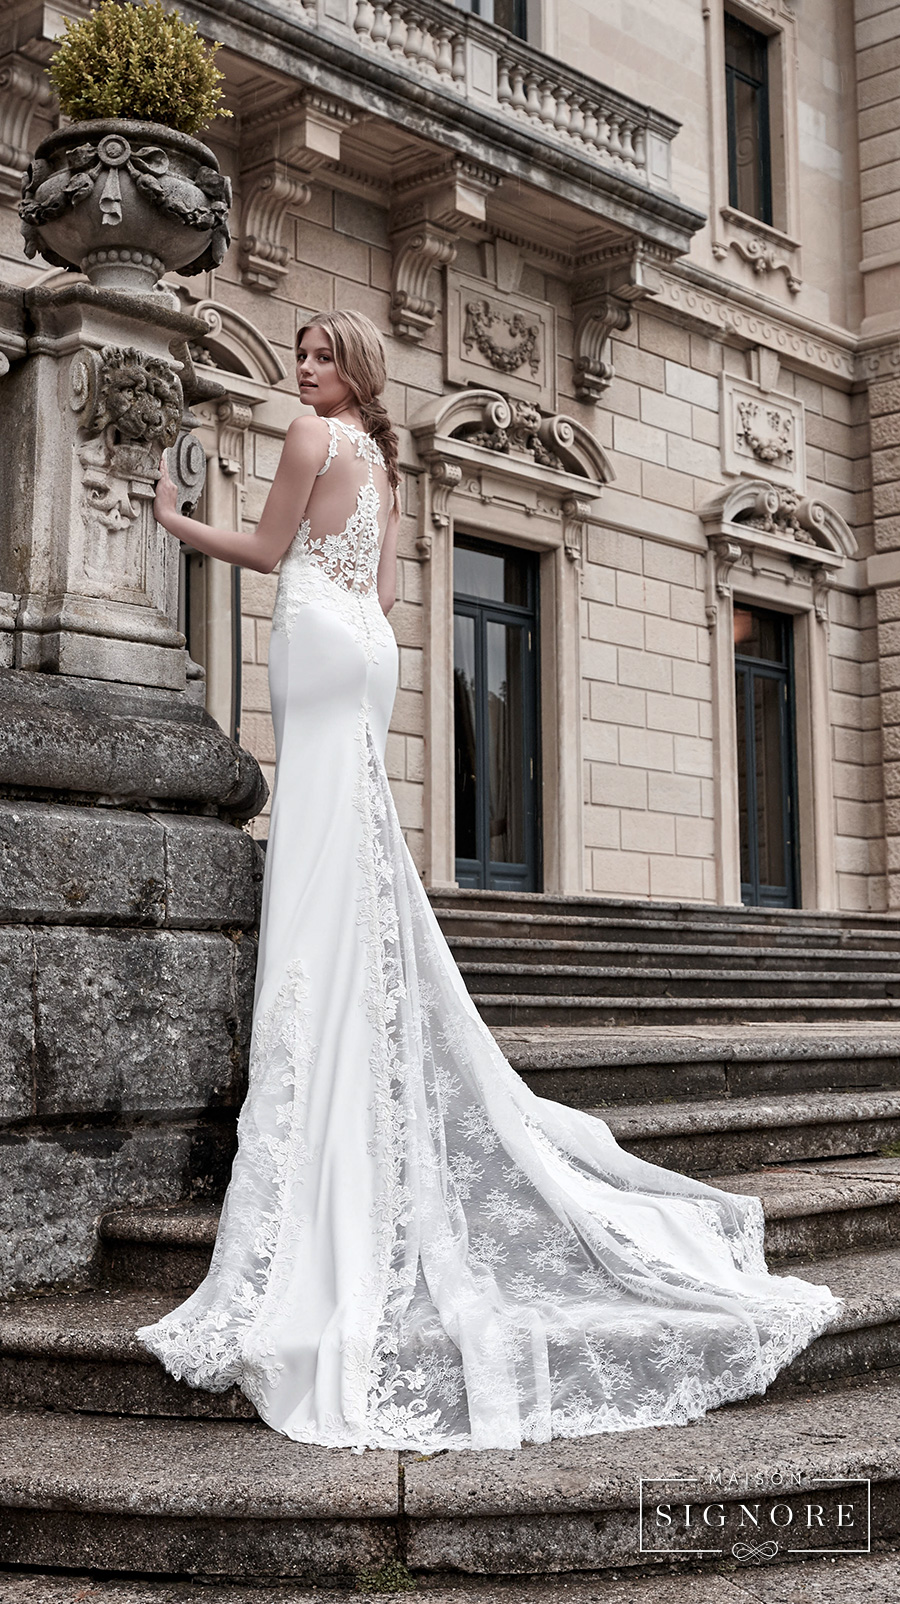 maison signore victoria f long sleeves wedding gown 3